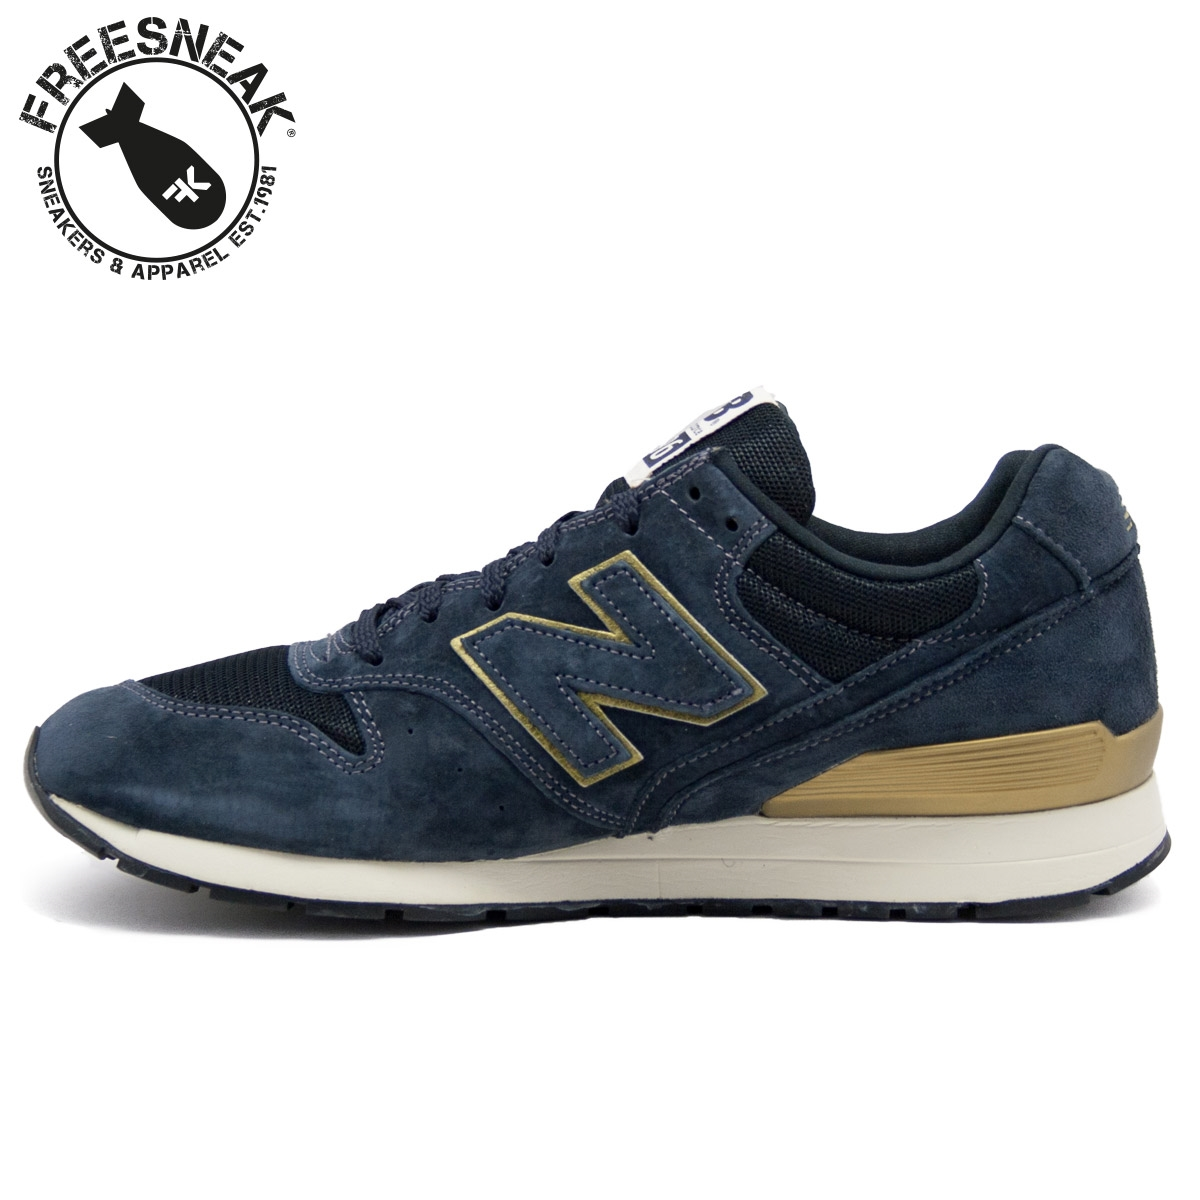 new balance 996 blue gold mrl996hb sneakers shoes man. Black Bedroom Furniture Sets. Home Design Ideas